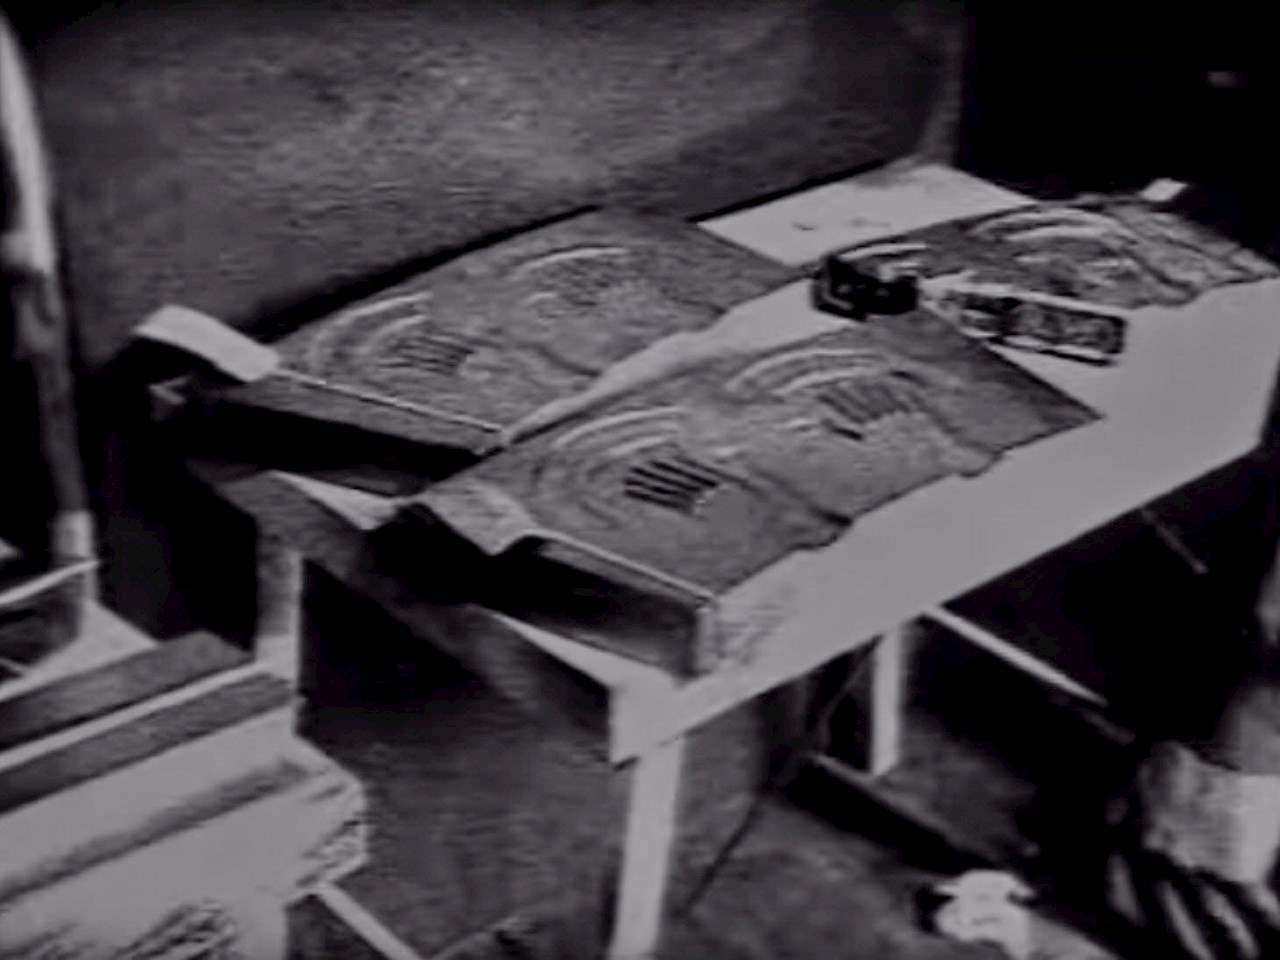 Taken from The Original Alien Autopsy footage